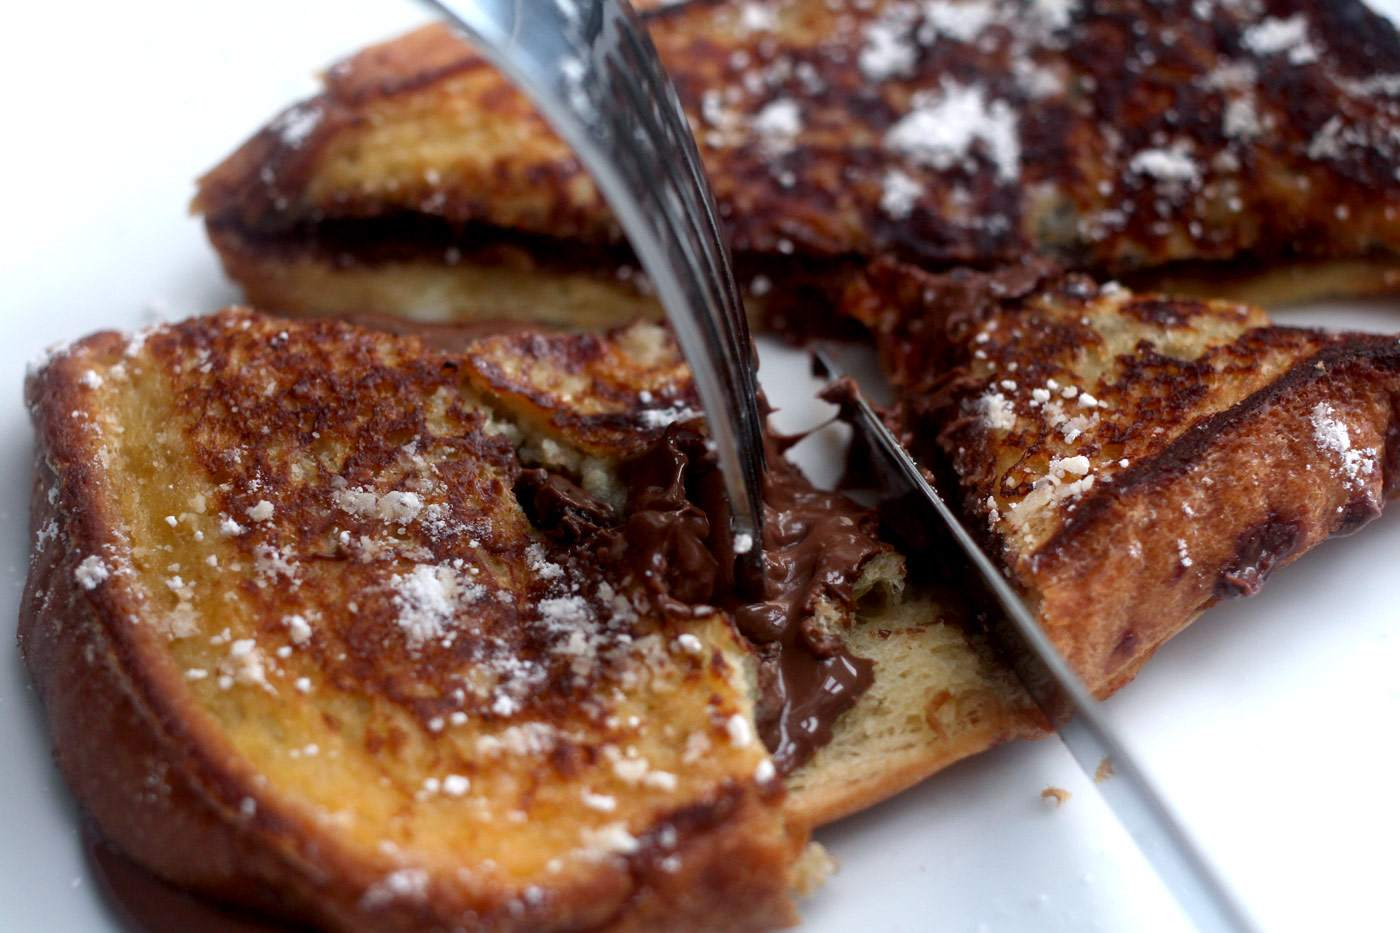 Nutella Stuffed French Toast with Brioche Pasquier - The Lovecats Inc